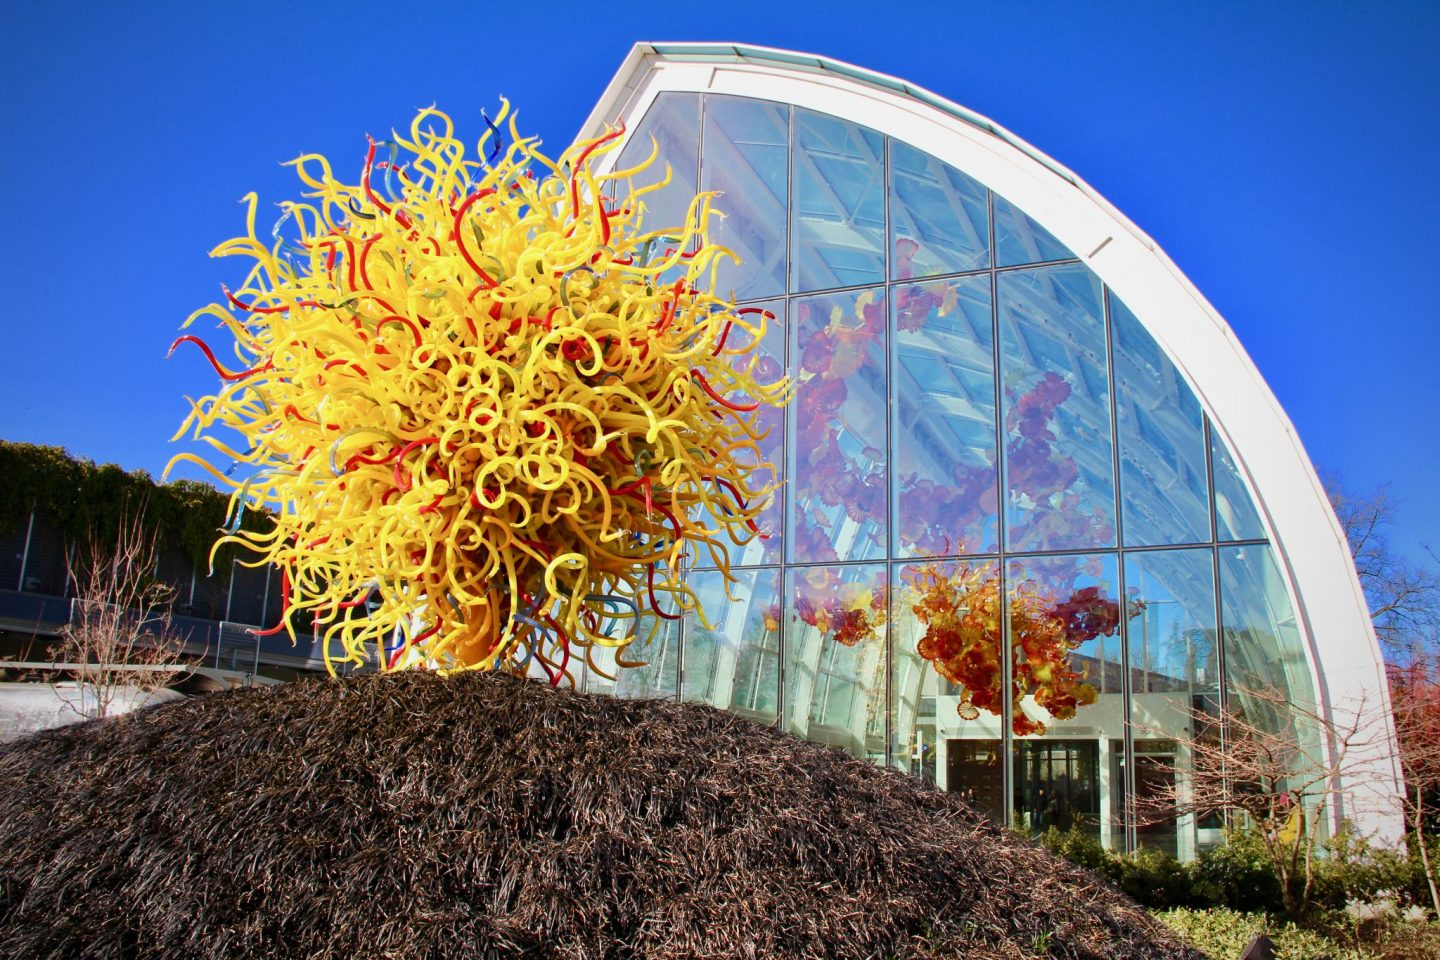 Chihuly Glass Museum, Seattle, Washington ... 24 hours in Seattle, WA ... The Spectacular Adventurer